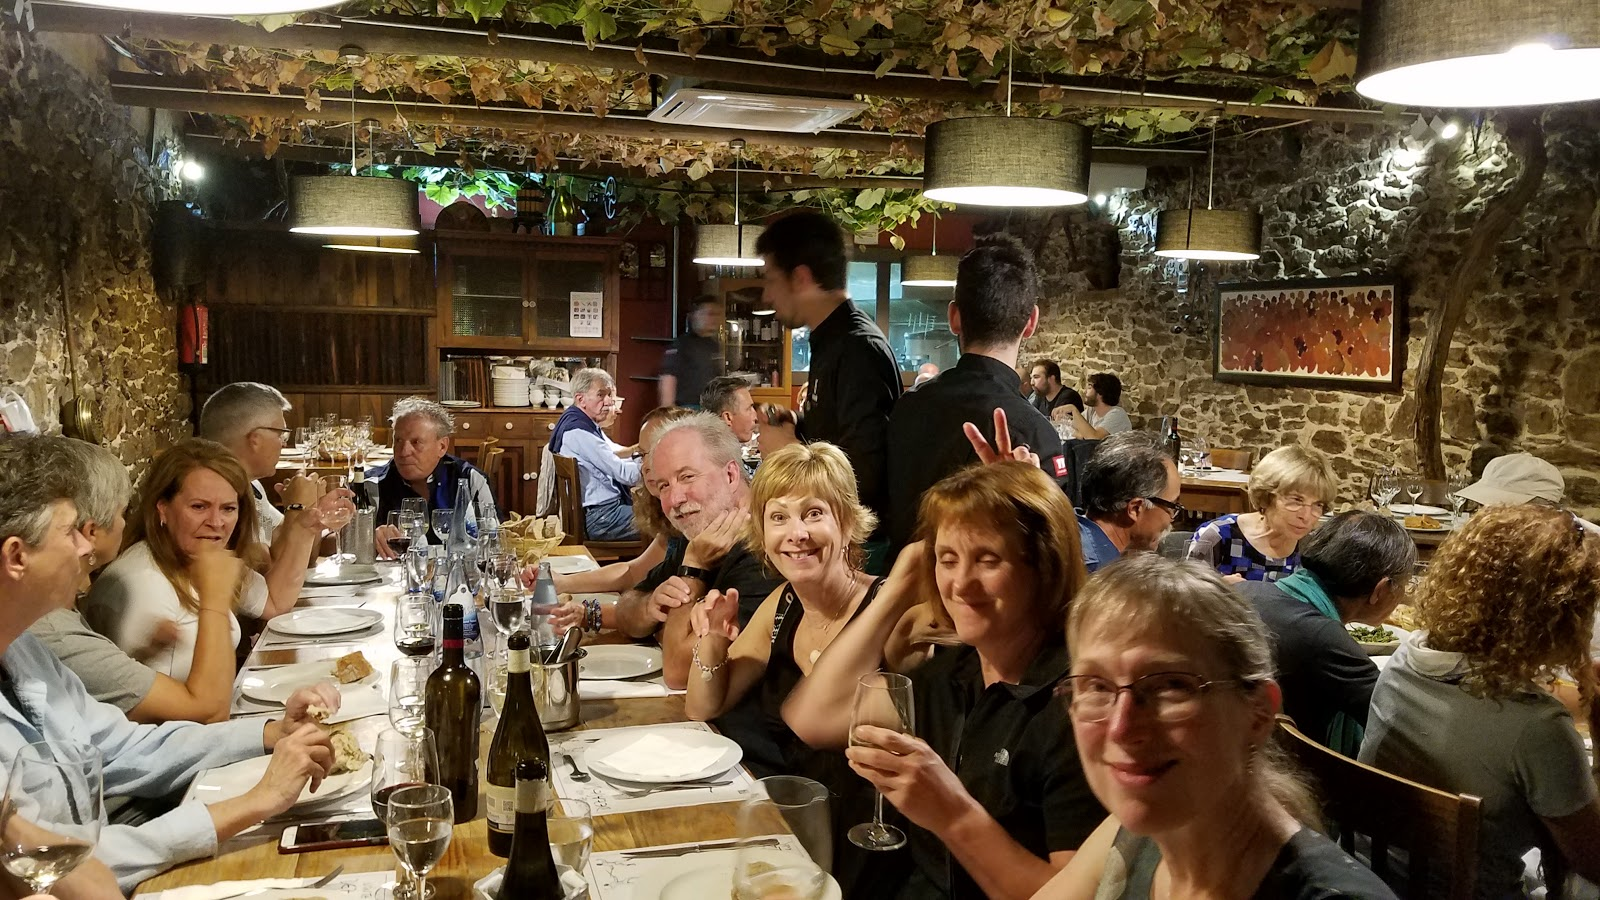 Our pilgrim's farewell dinner in Santiago. Undoubtedly an emotional evening filled with lots of delicious Spanish food and merry making with toasts of Good Luck, Good Fortune and farewell, for now.